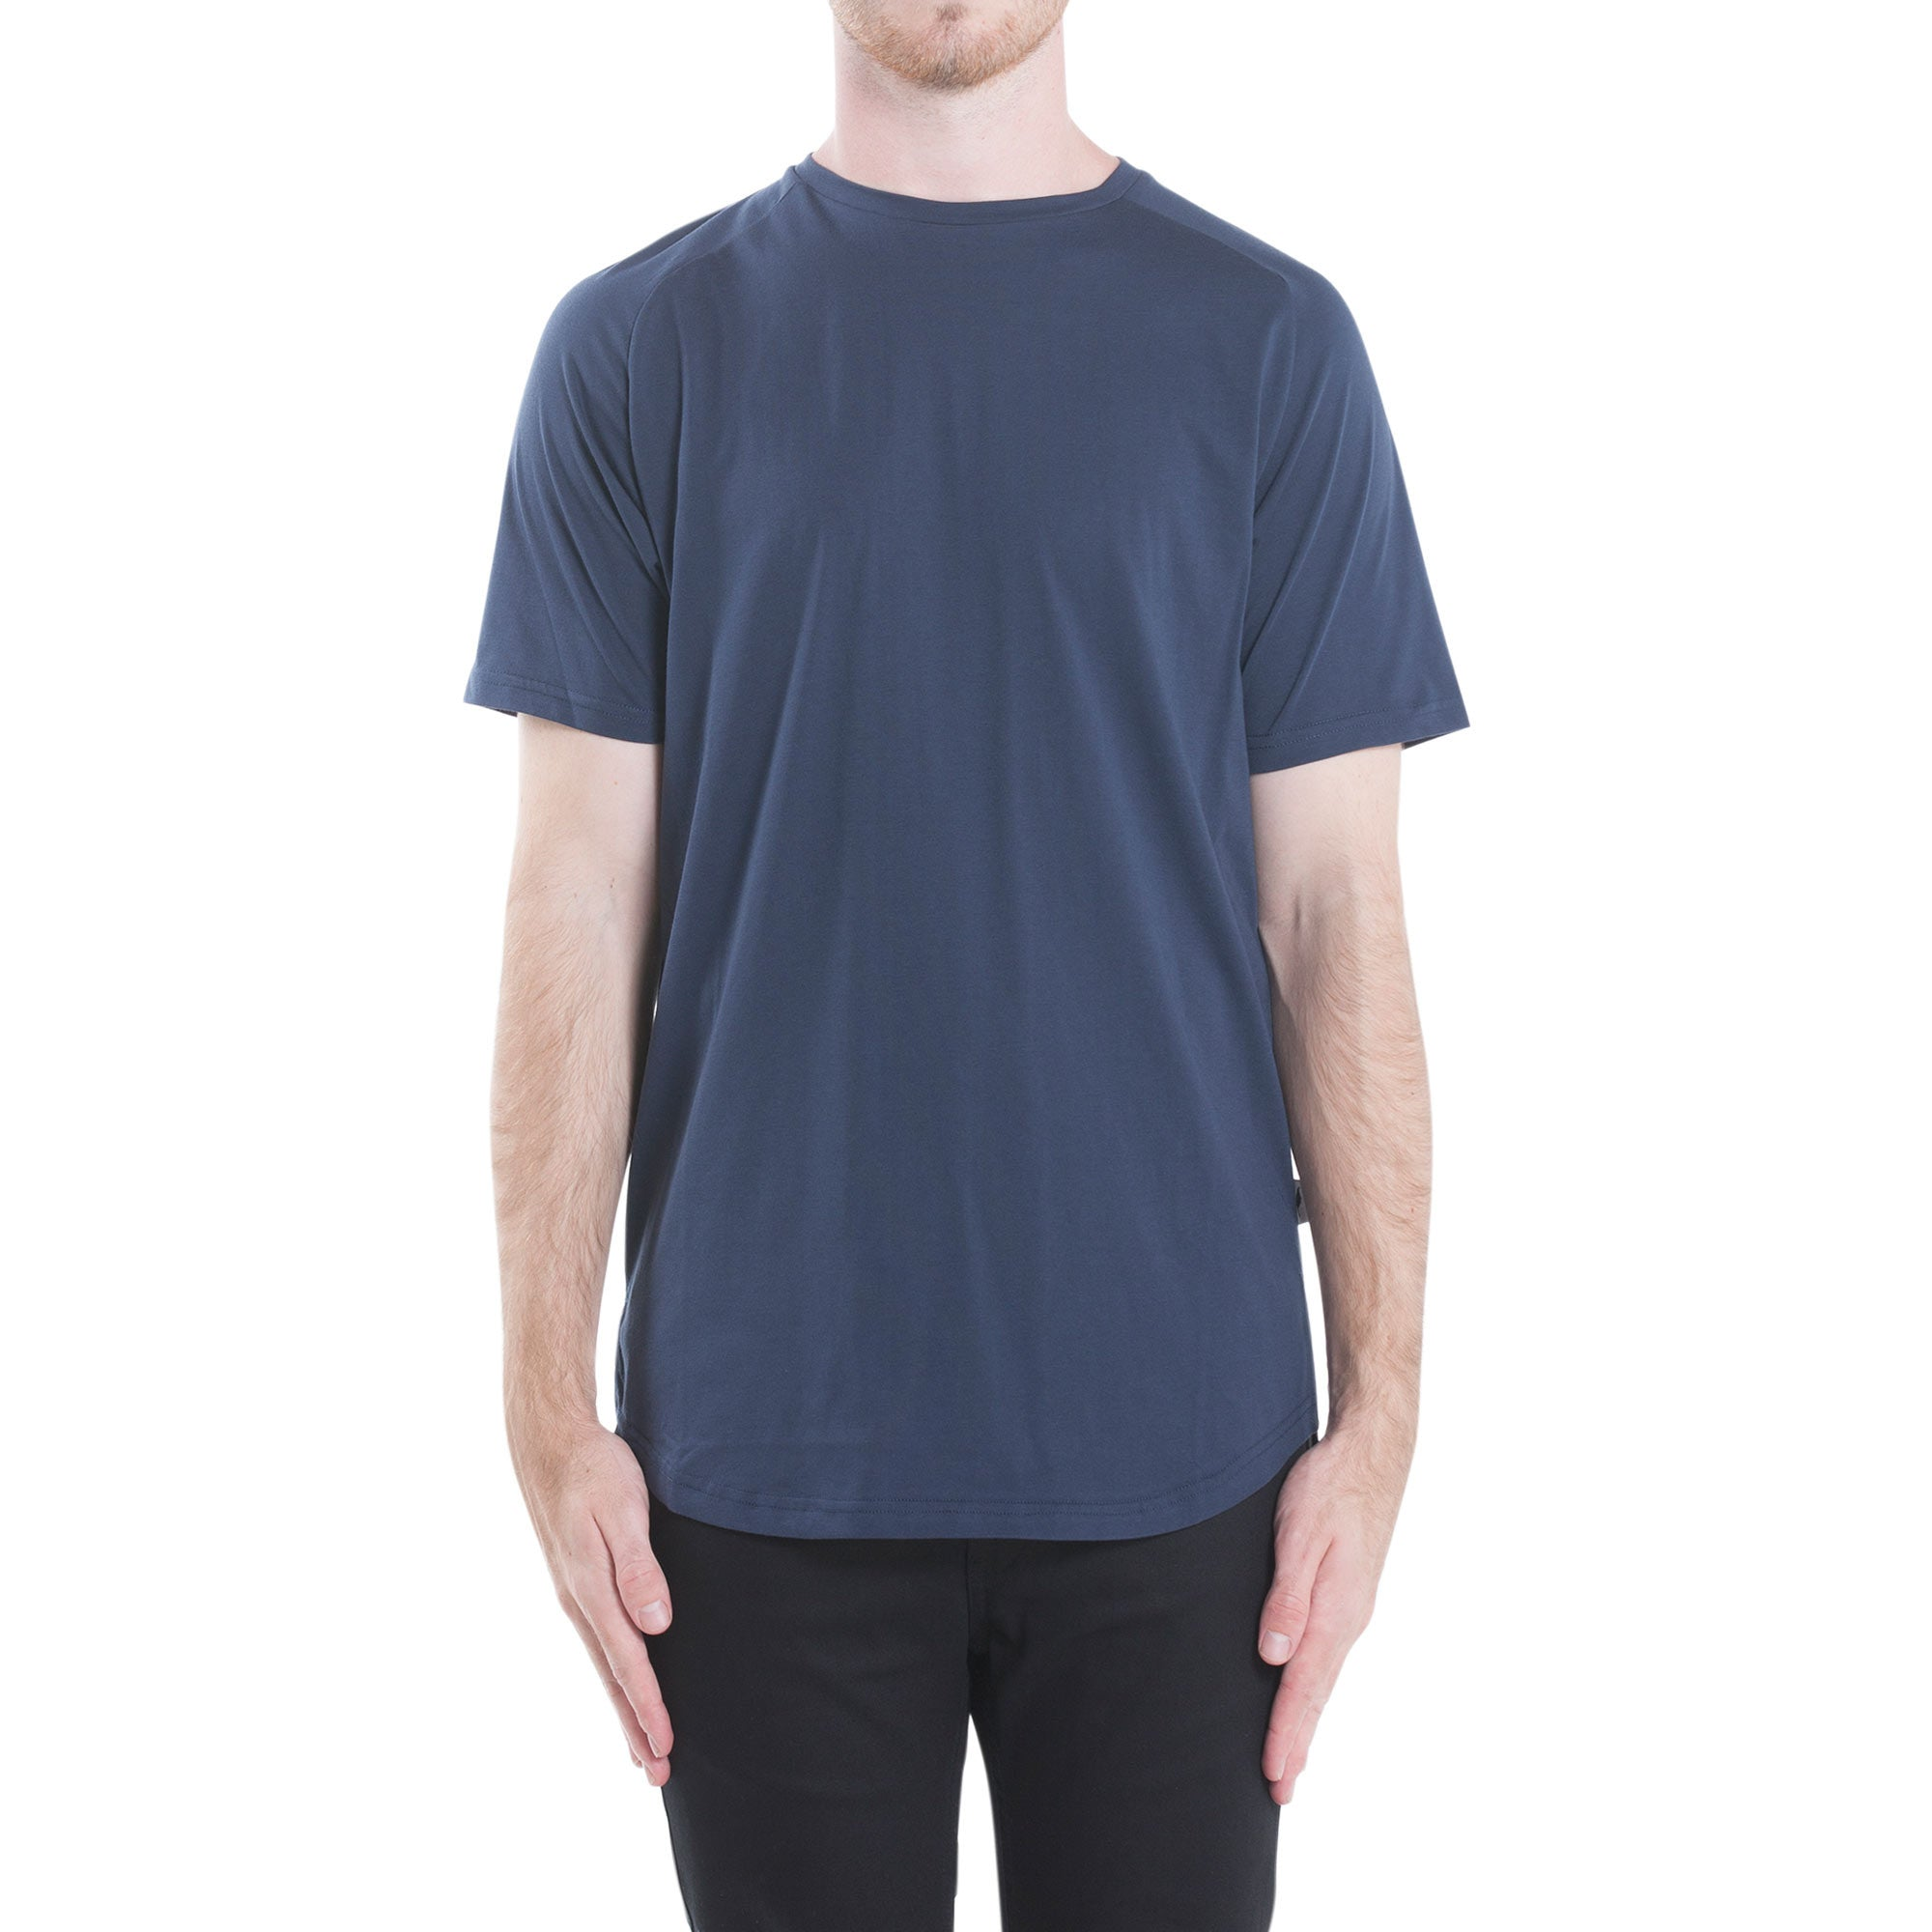 Index S/S Raglan Tee - Navy